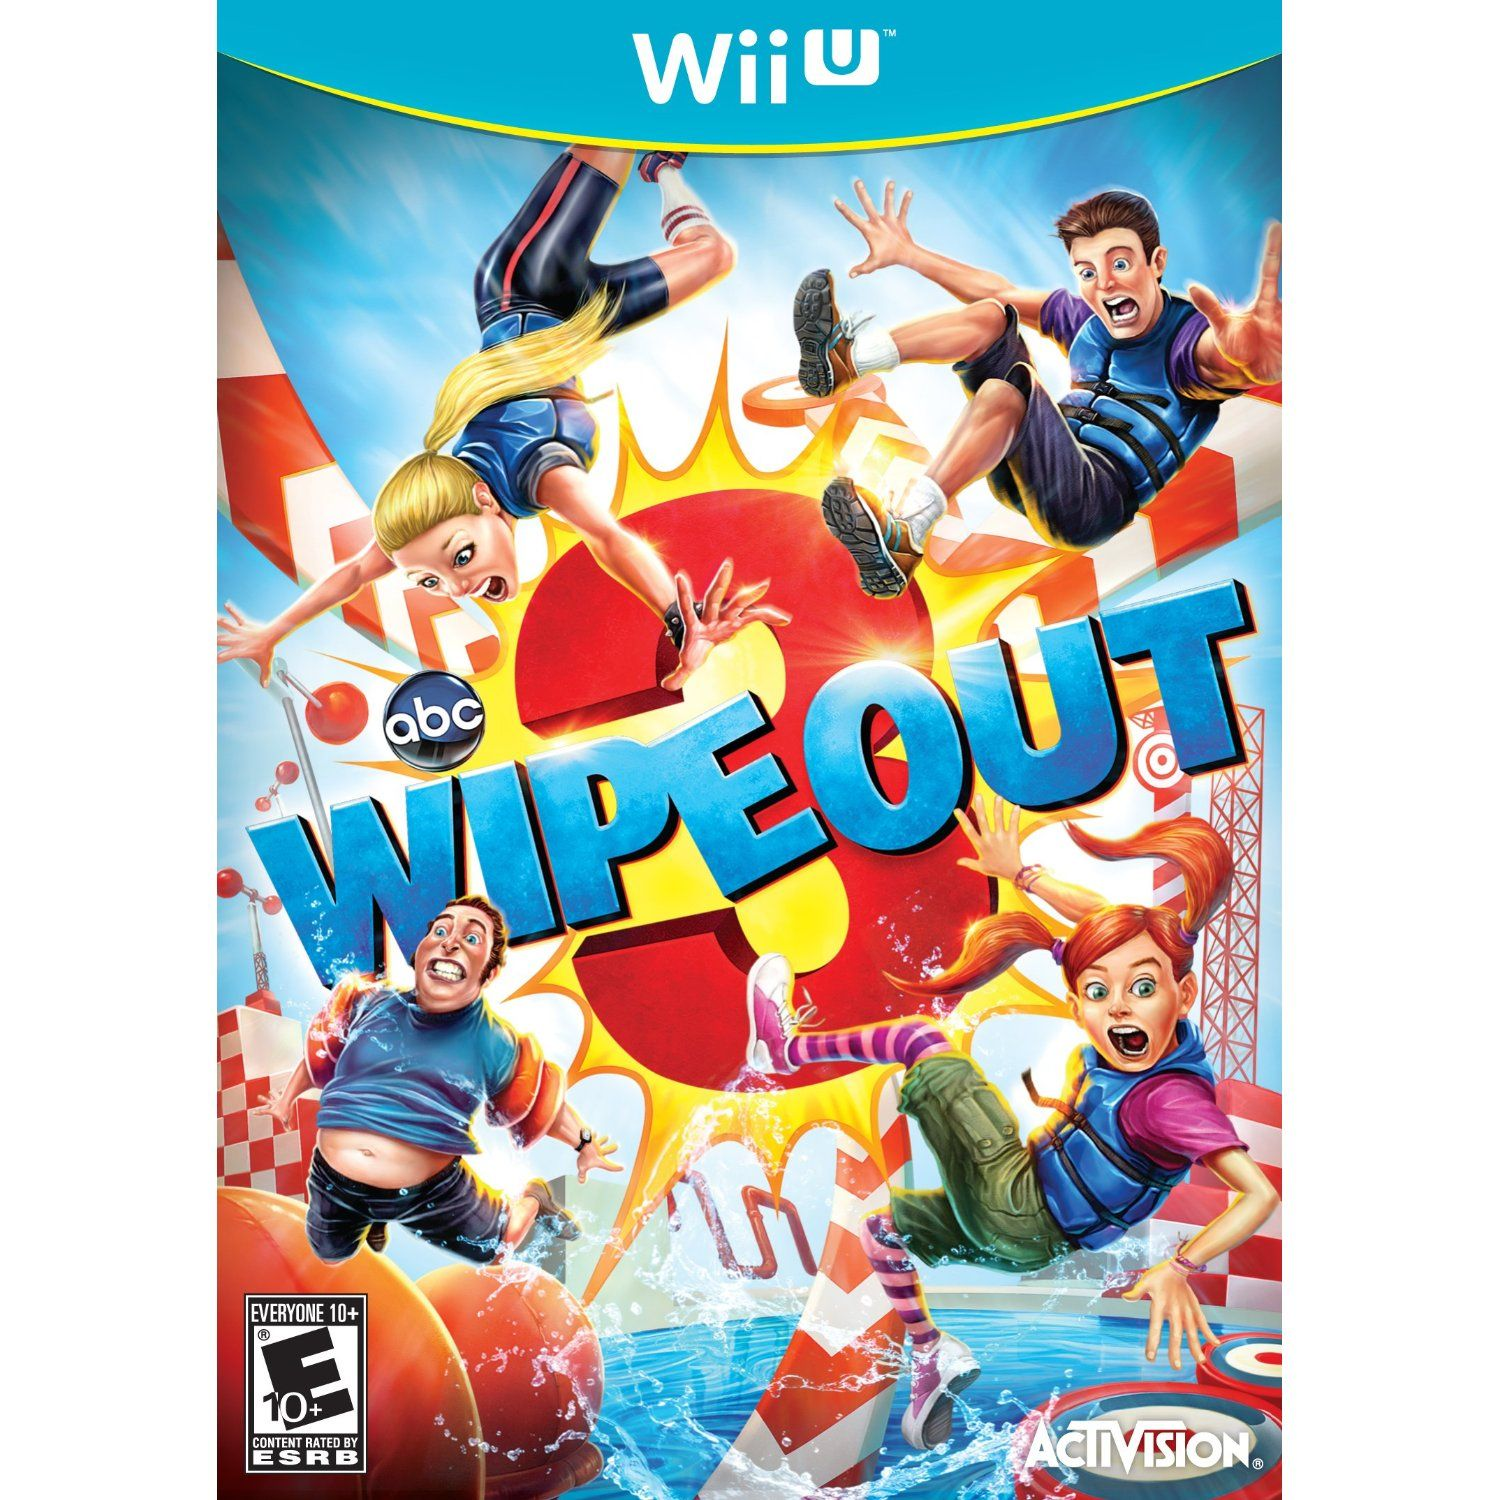 Wipeout has been a very successful game for the entire